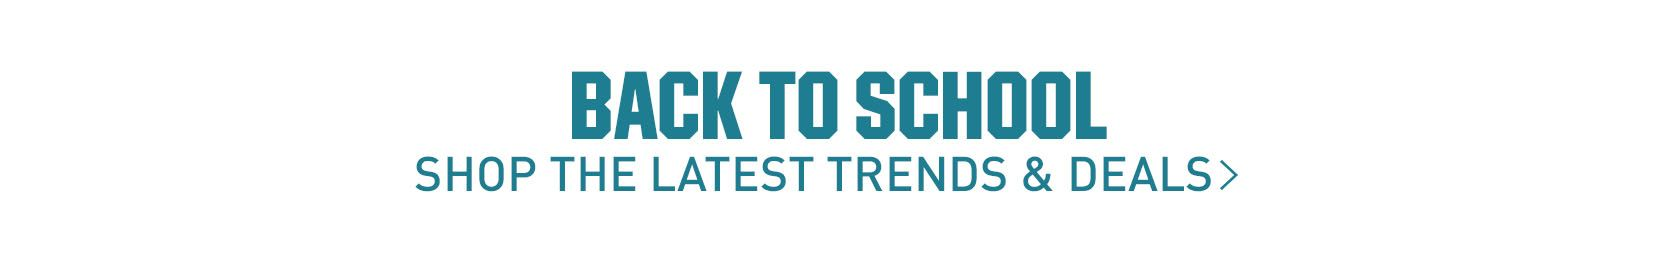 Shop Back to School Latest Trends